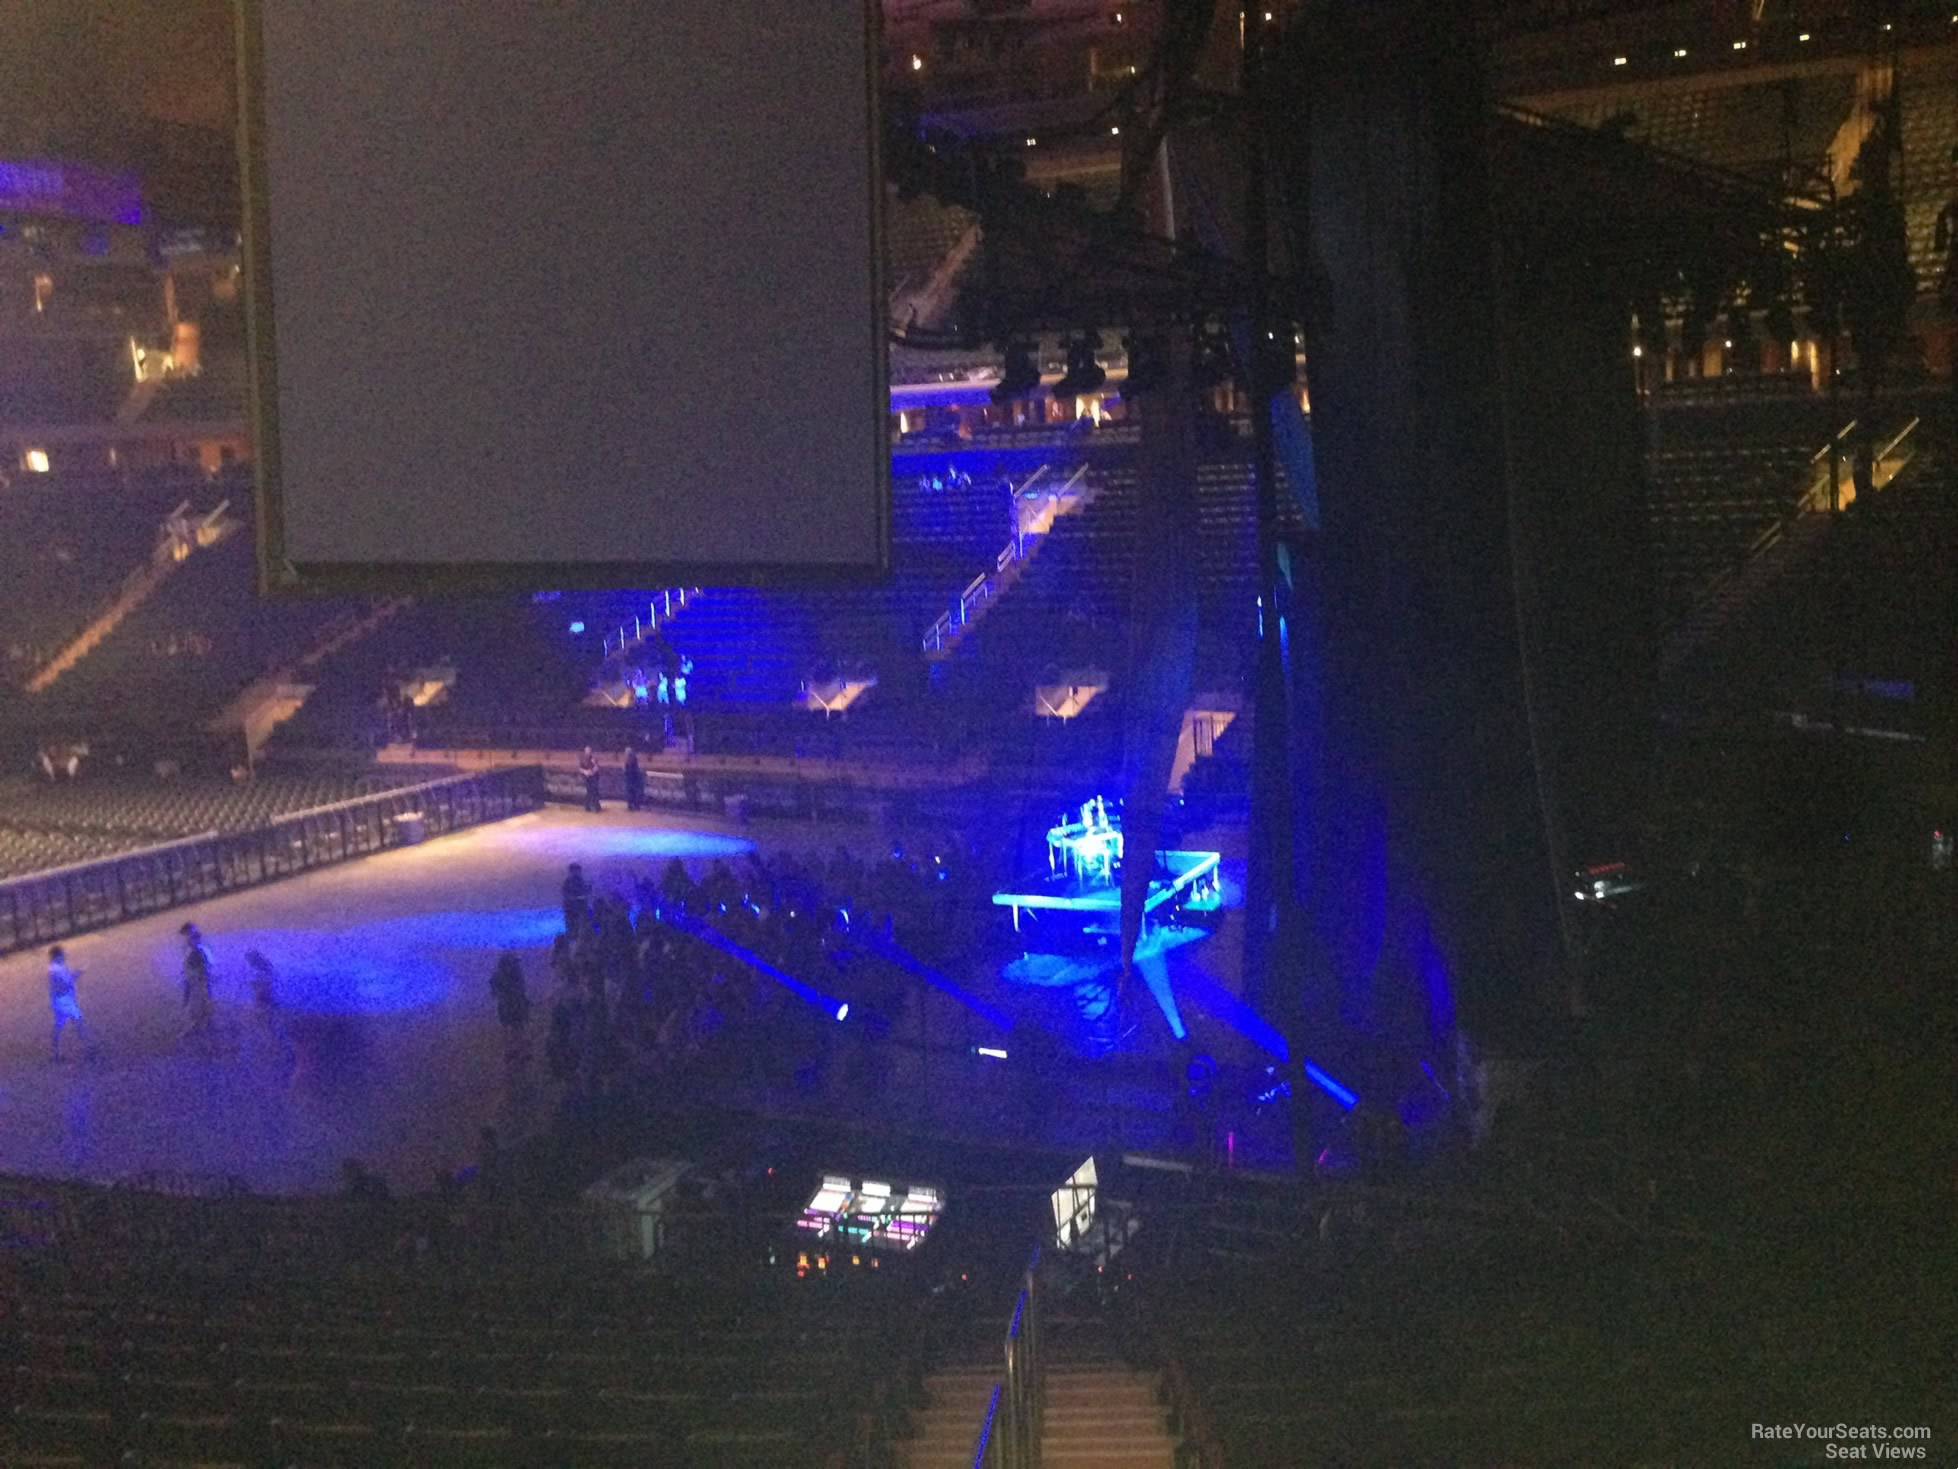 Madison Square Garden Section 110 Concert Seating